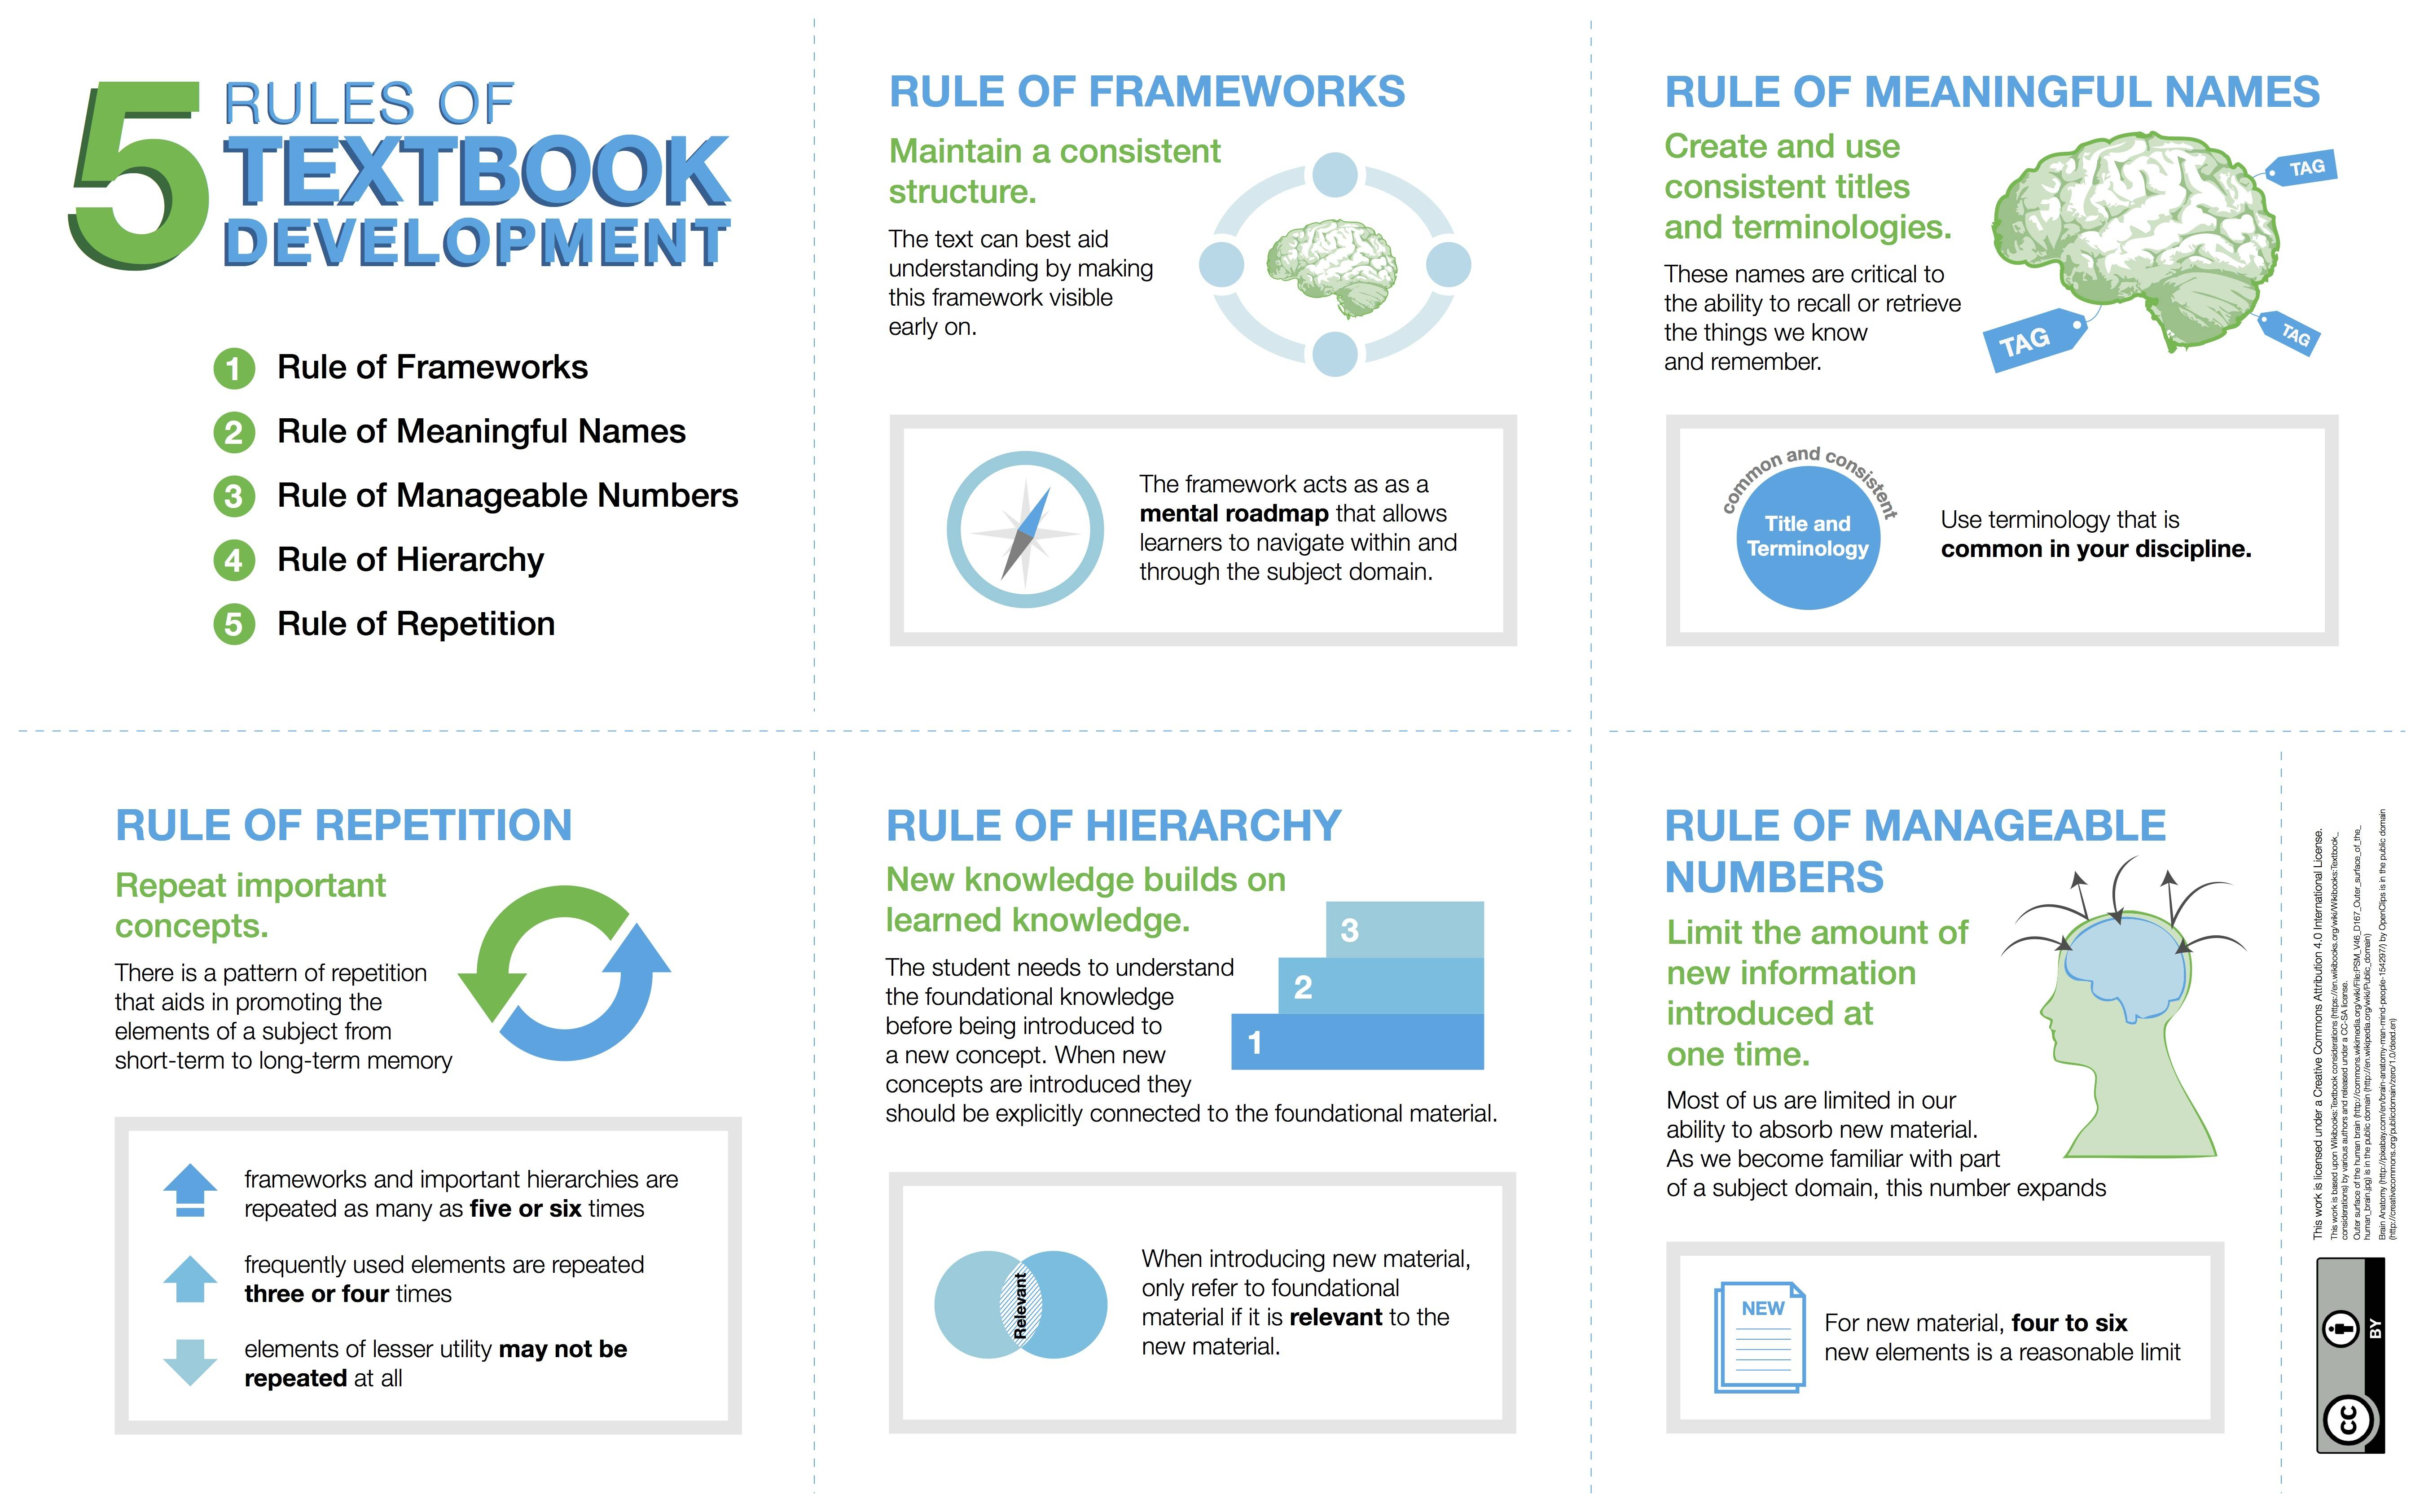 5 rules of textbook development: frameworks, meaningful names, repetition, hierarchy, and manageable numbers